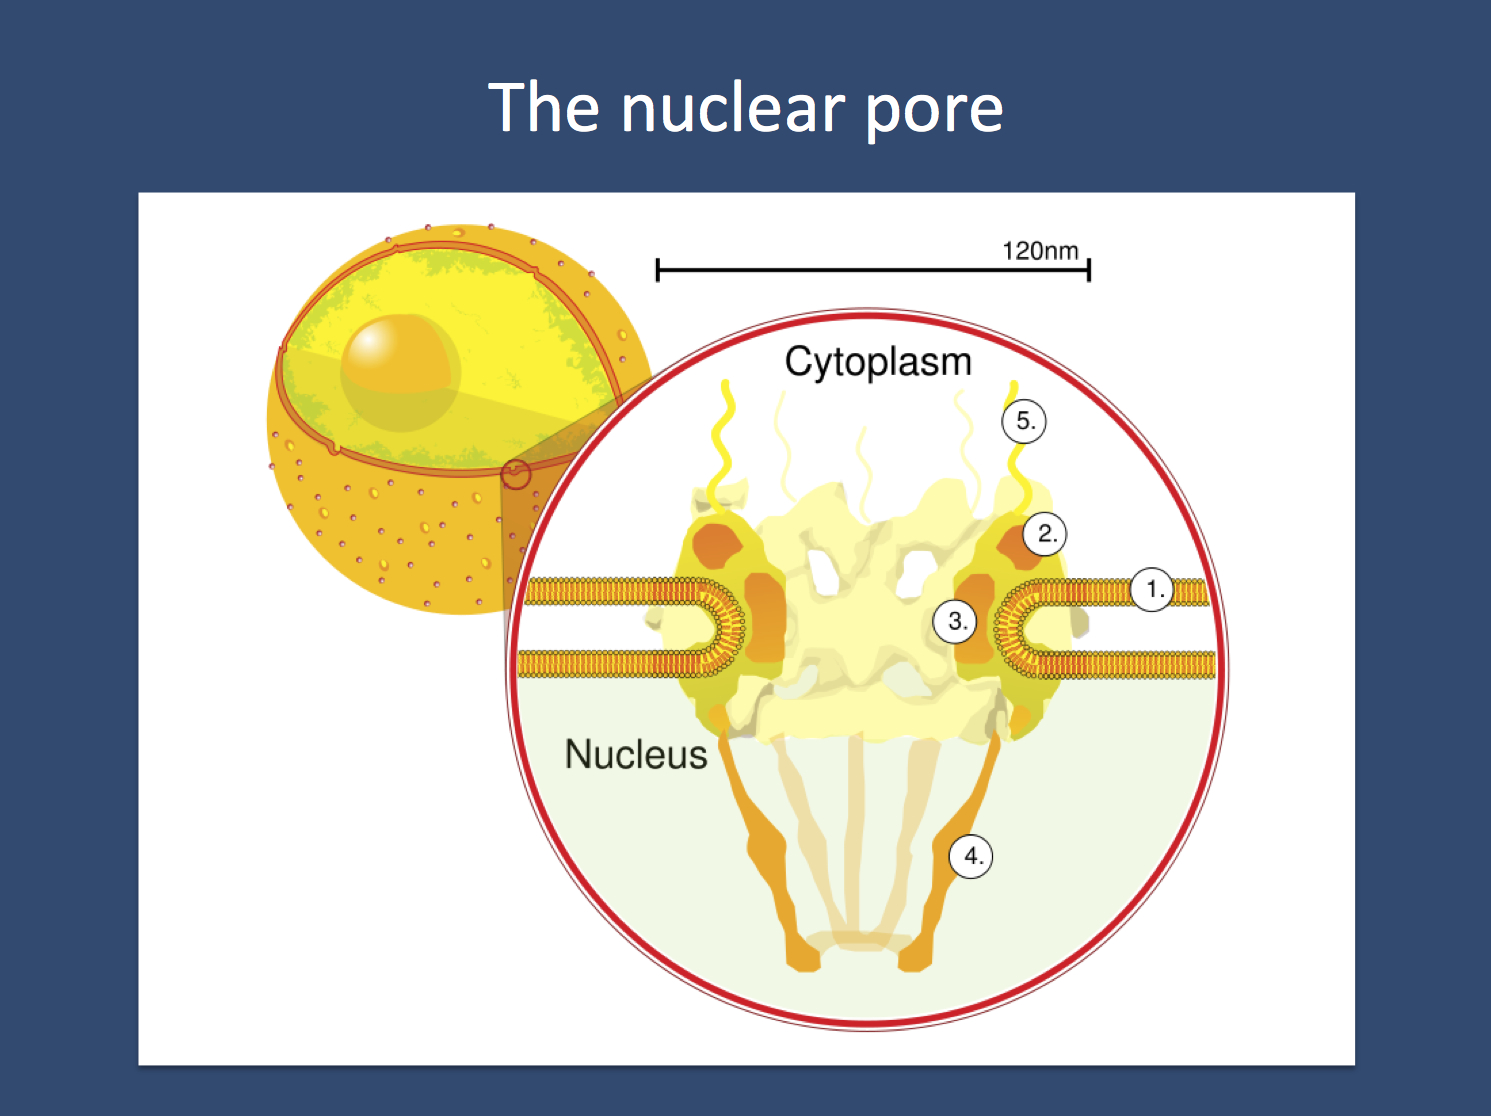 The nuclear pore. Nuclear pore. Side view. 1. Nuclear envelope. 2. Outer ring. 3. Spokes. 4. Basket. 5. Filaments. Image is by Wikipedia reproduced under the Creative Commons Licence (http://en.wikipedia.org/wiki/File:NuclearPore_crop.svg.png)